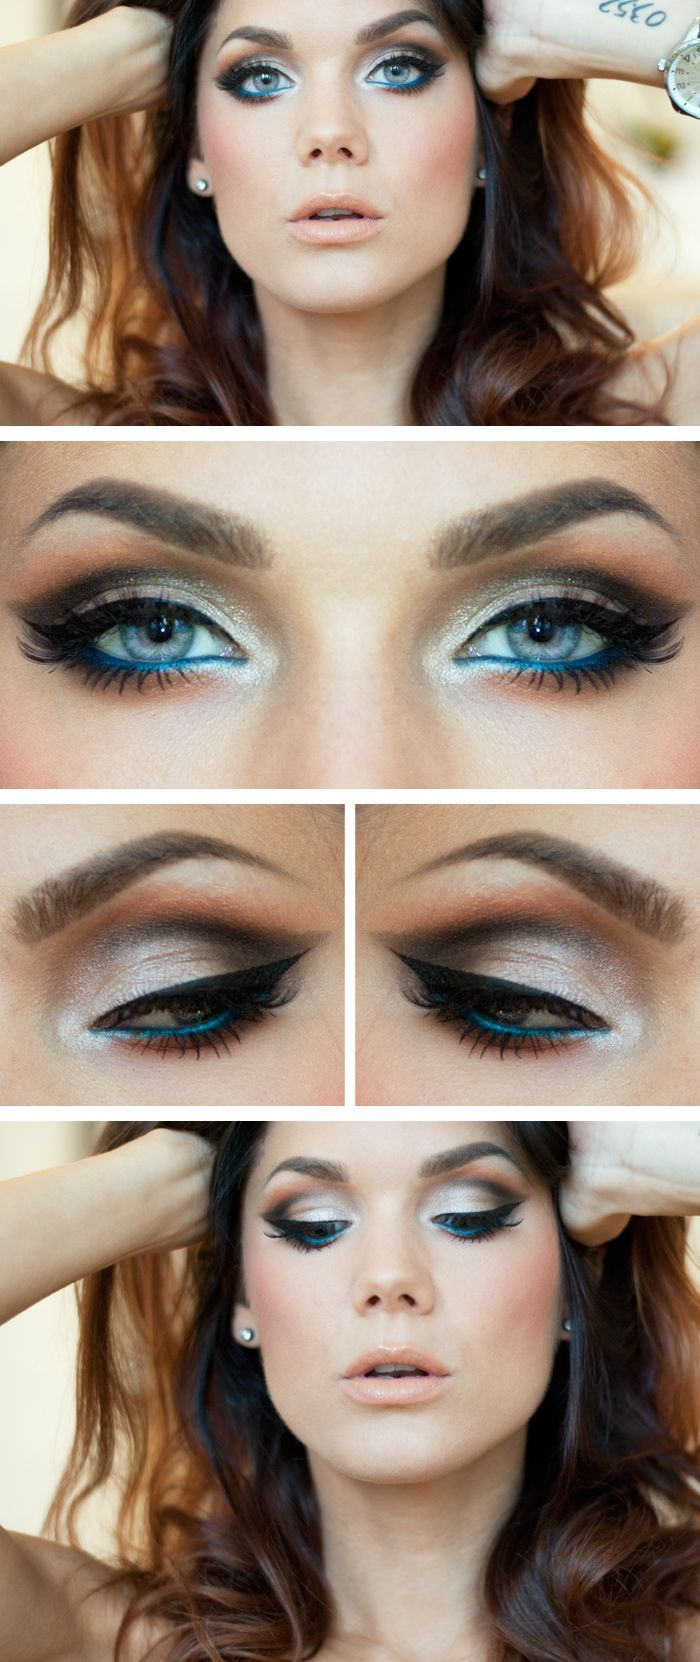 Make a Change by Linda Hallberg ( a beautiful smokey eye with a pop of teal or is it cerulean blue? eyeliner in the lower lashline. Perfect for summer!) #makeup